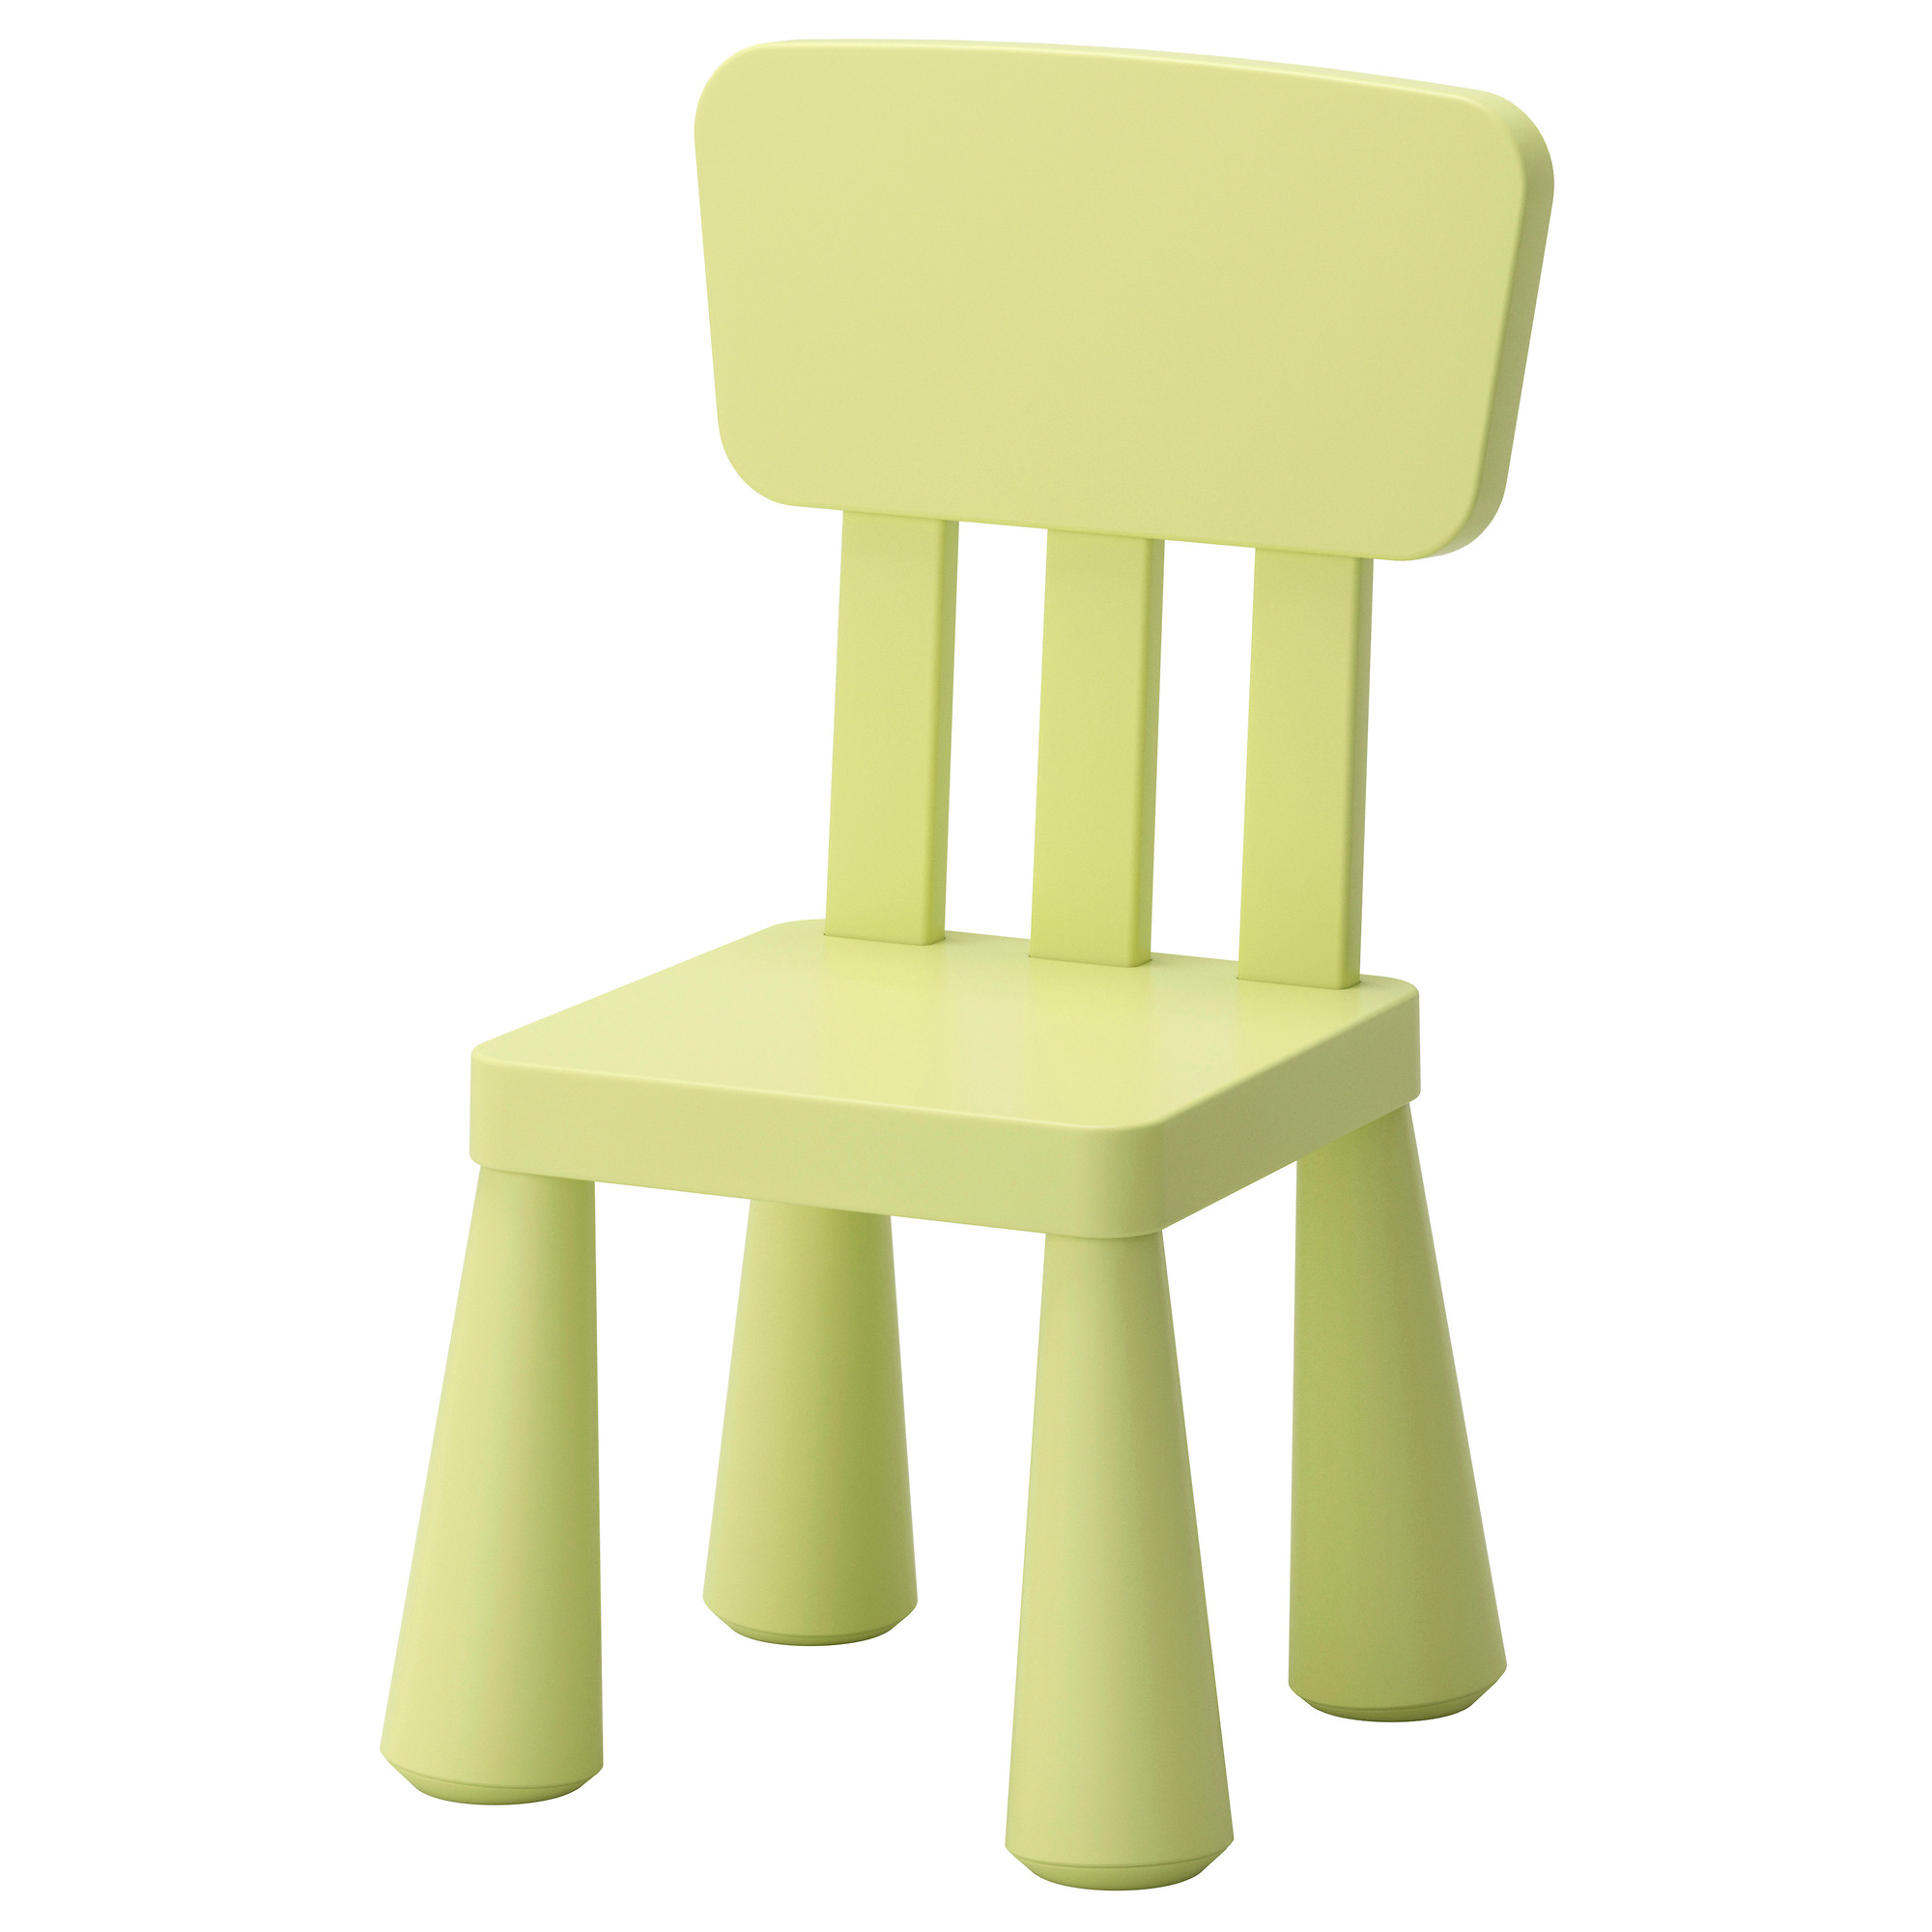 Pictures of MAMMUT childrenu0027s chair, indoor/outdoor light green, light green Width: 15 3 plastic toddler chairs